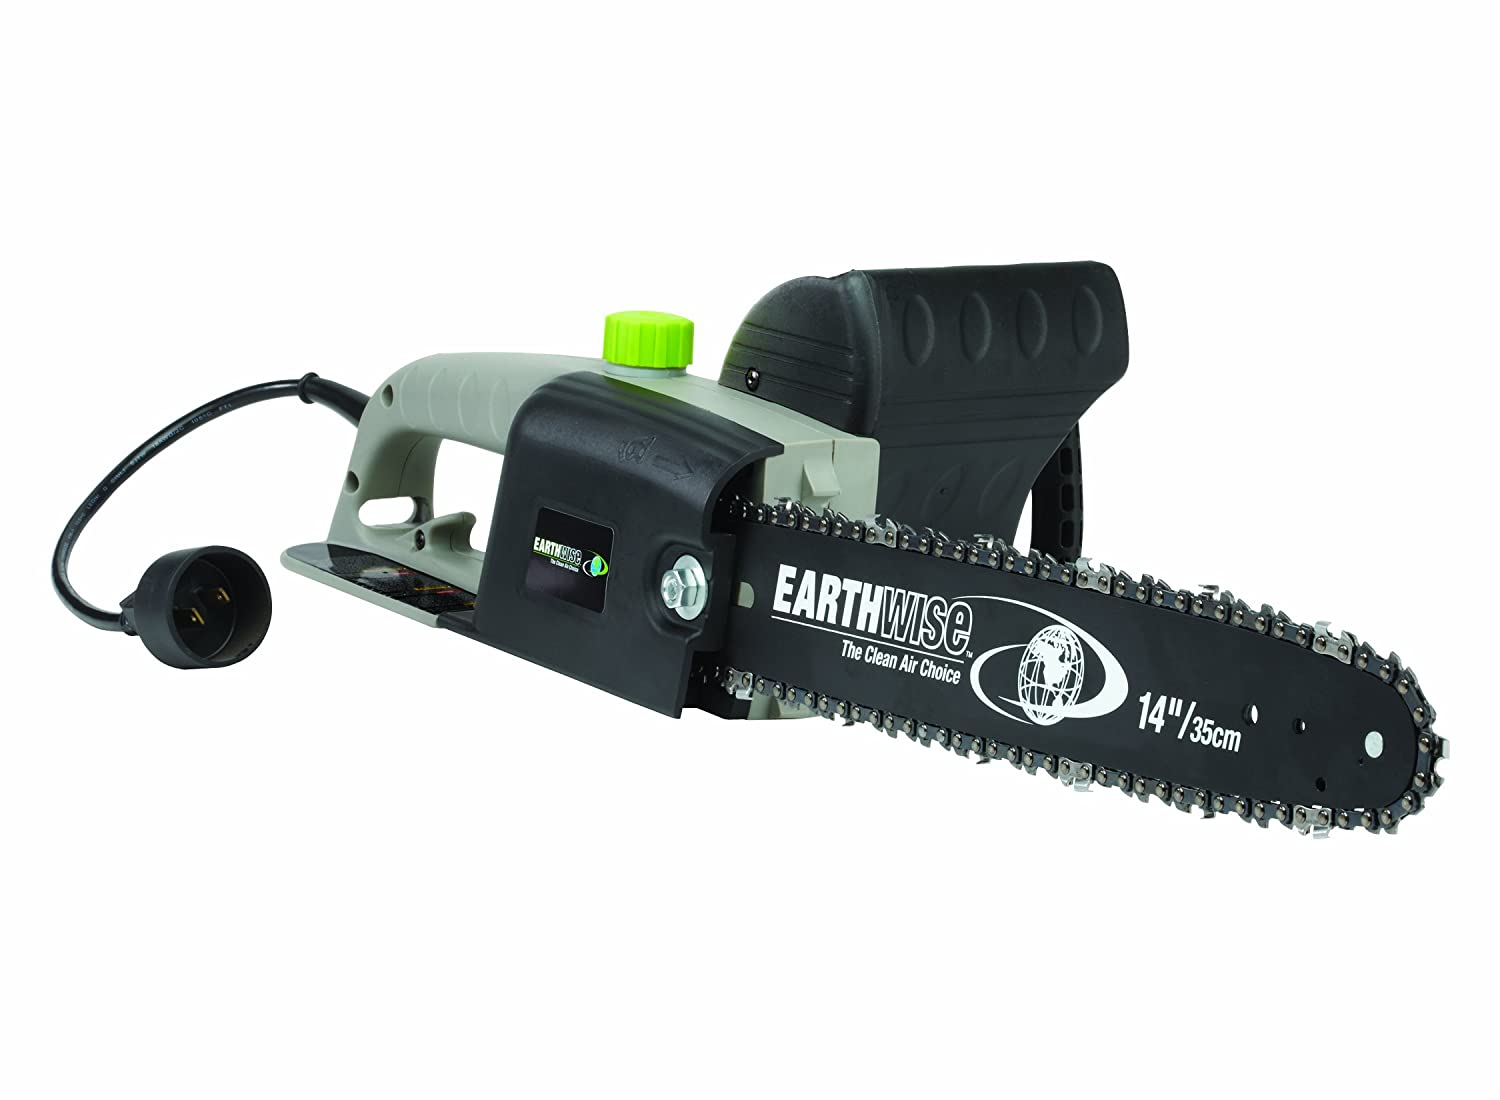 Earthwise opp00014 corded 8 amp chainsaw grayblackgreen 14 bar earthwise opp00014 corded 8 amp chainsaw grayblackgreen 14 bar length amazon patio lawn garden keyboard keysfo Images